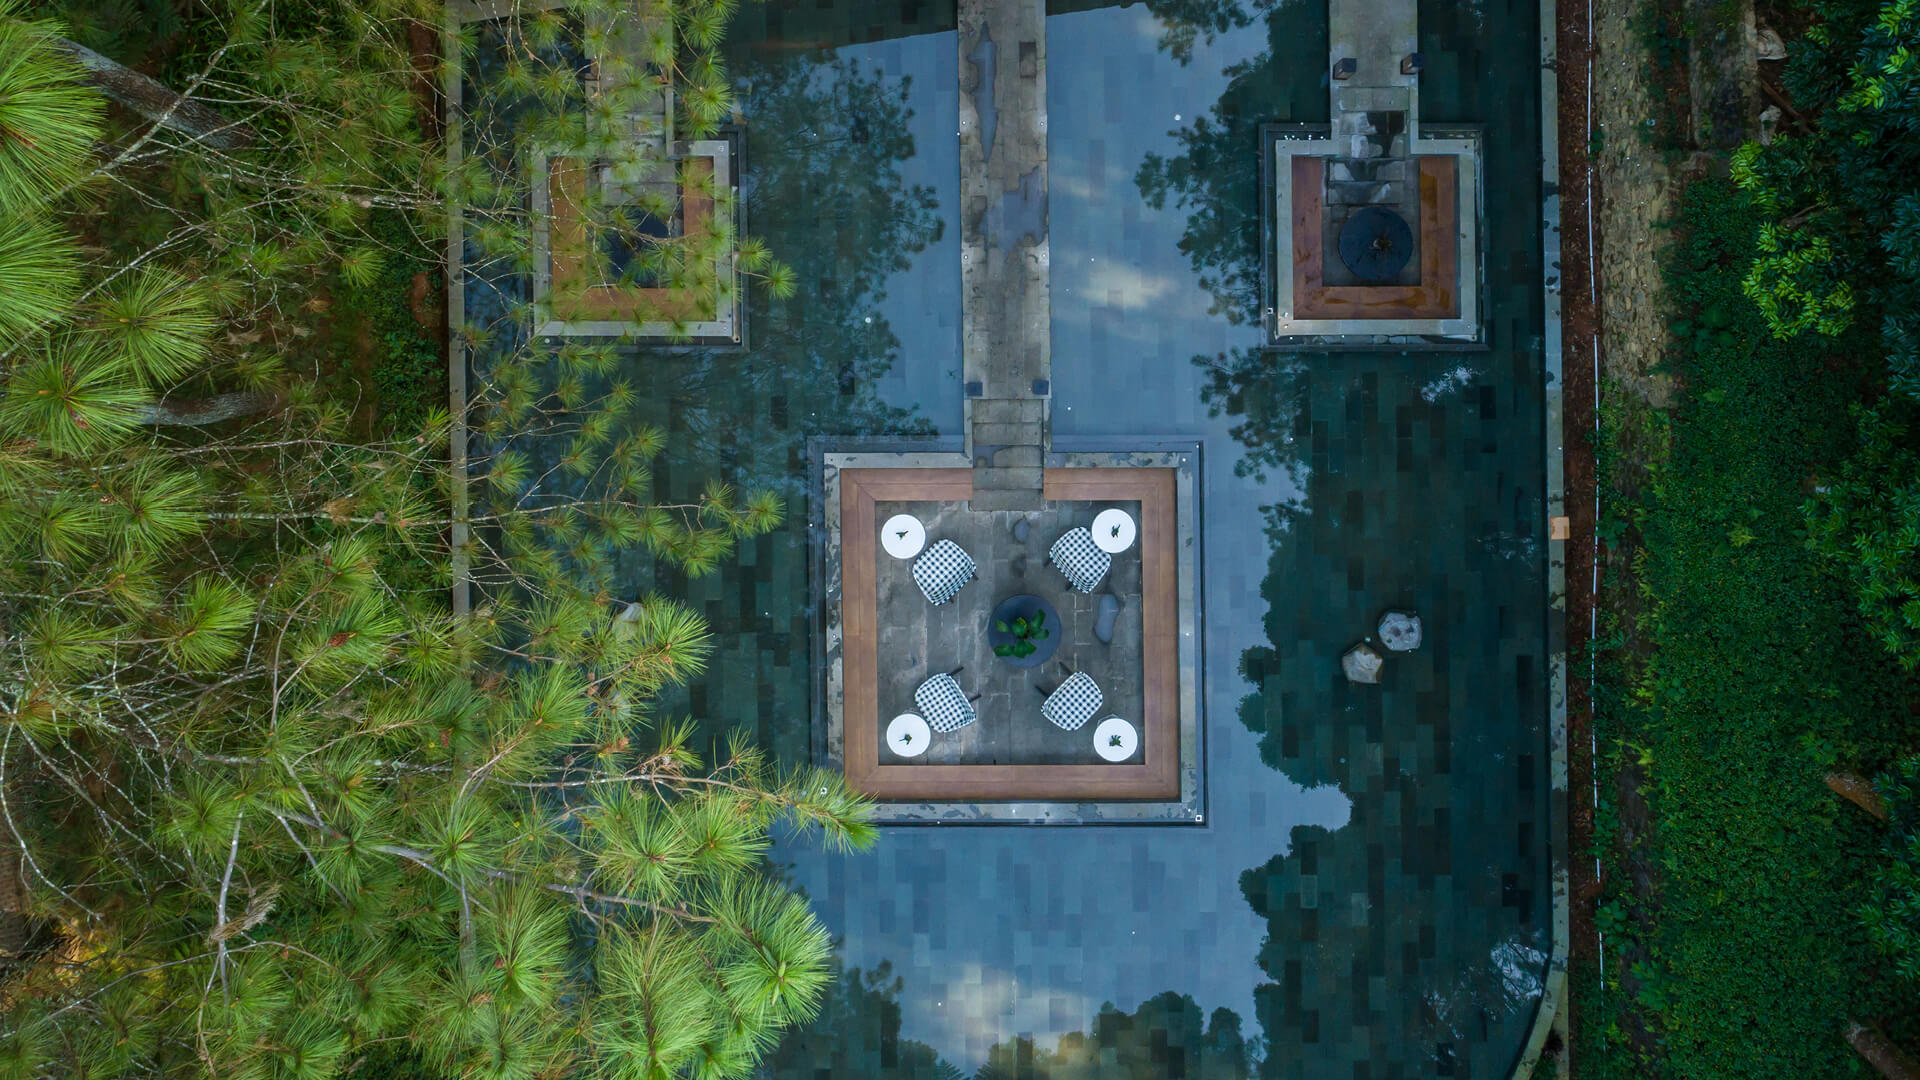 The Lakehouse restaurant sits amid the lush pine forest in Jawa Barat, Indonesia